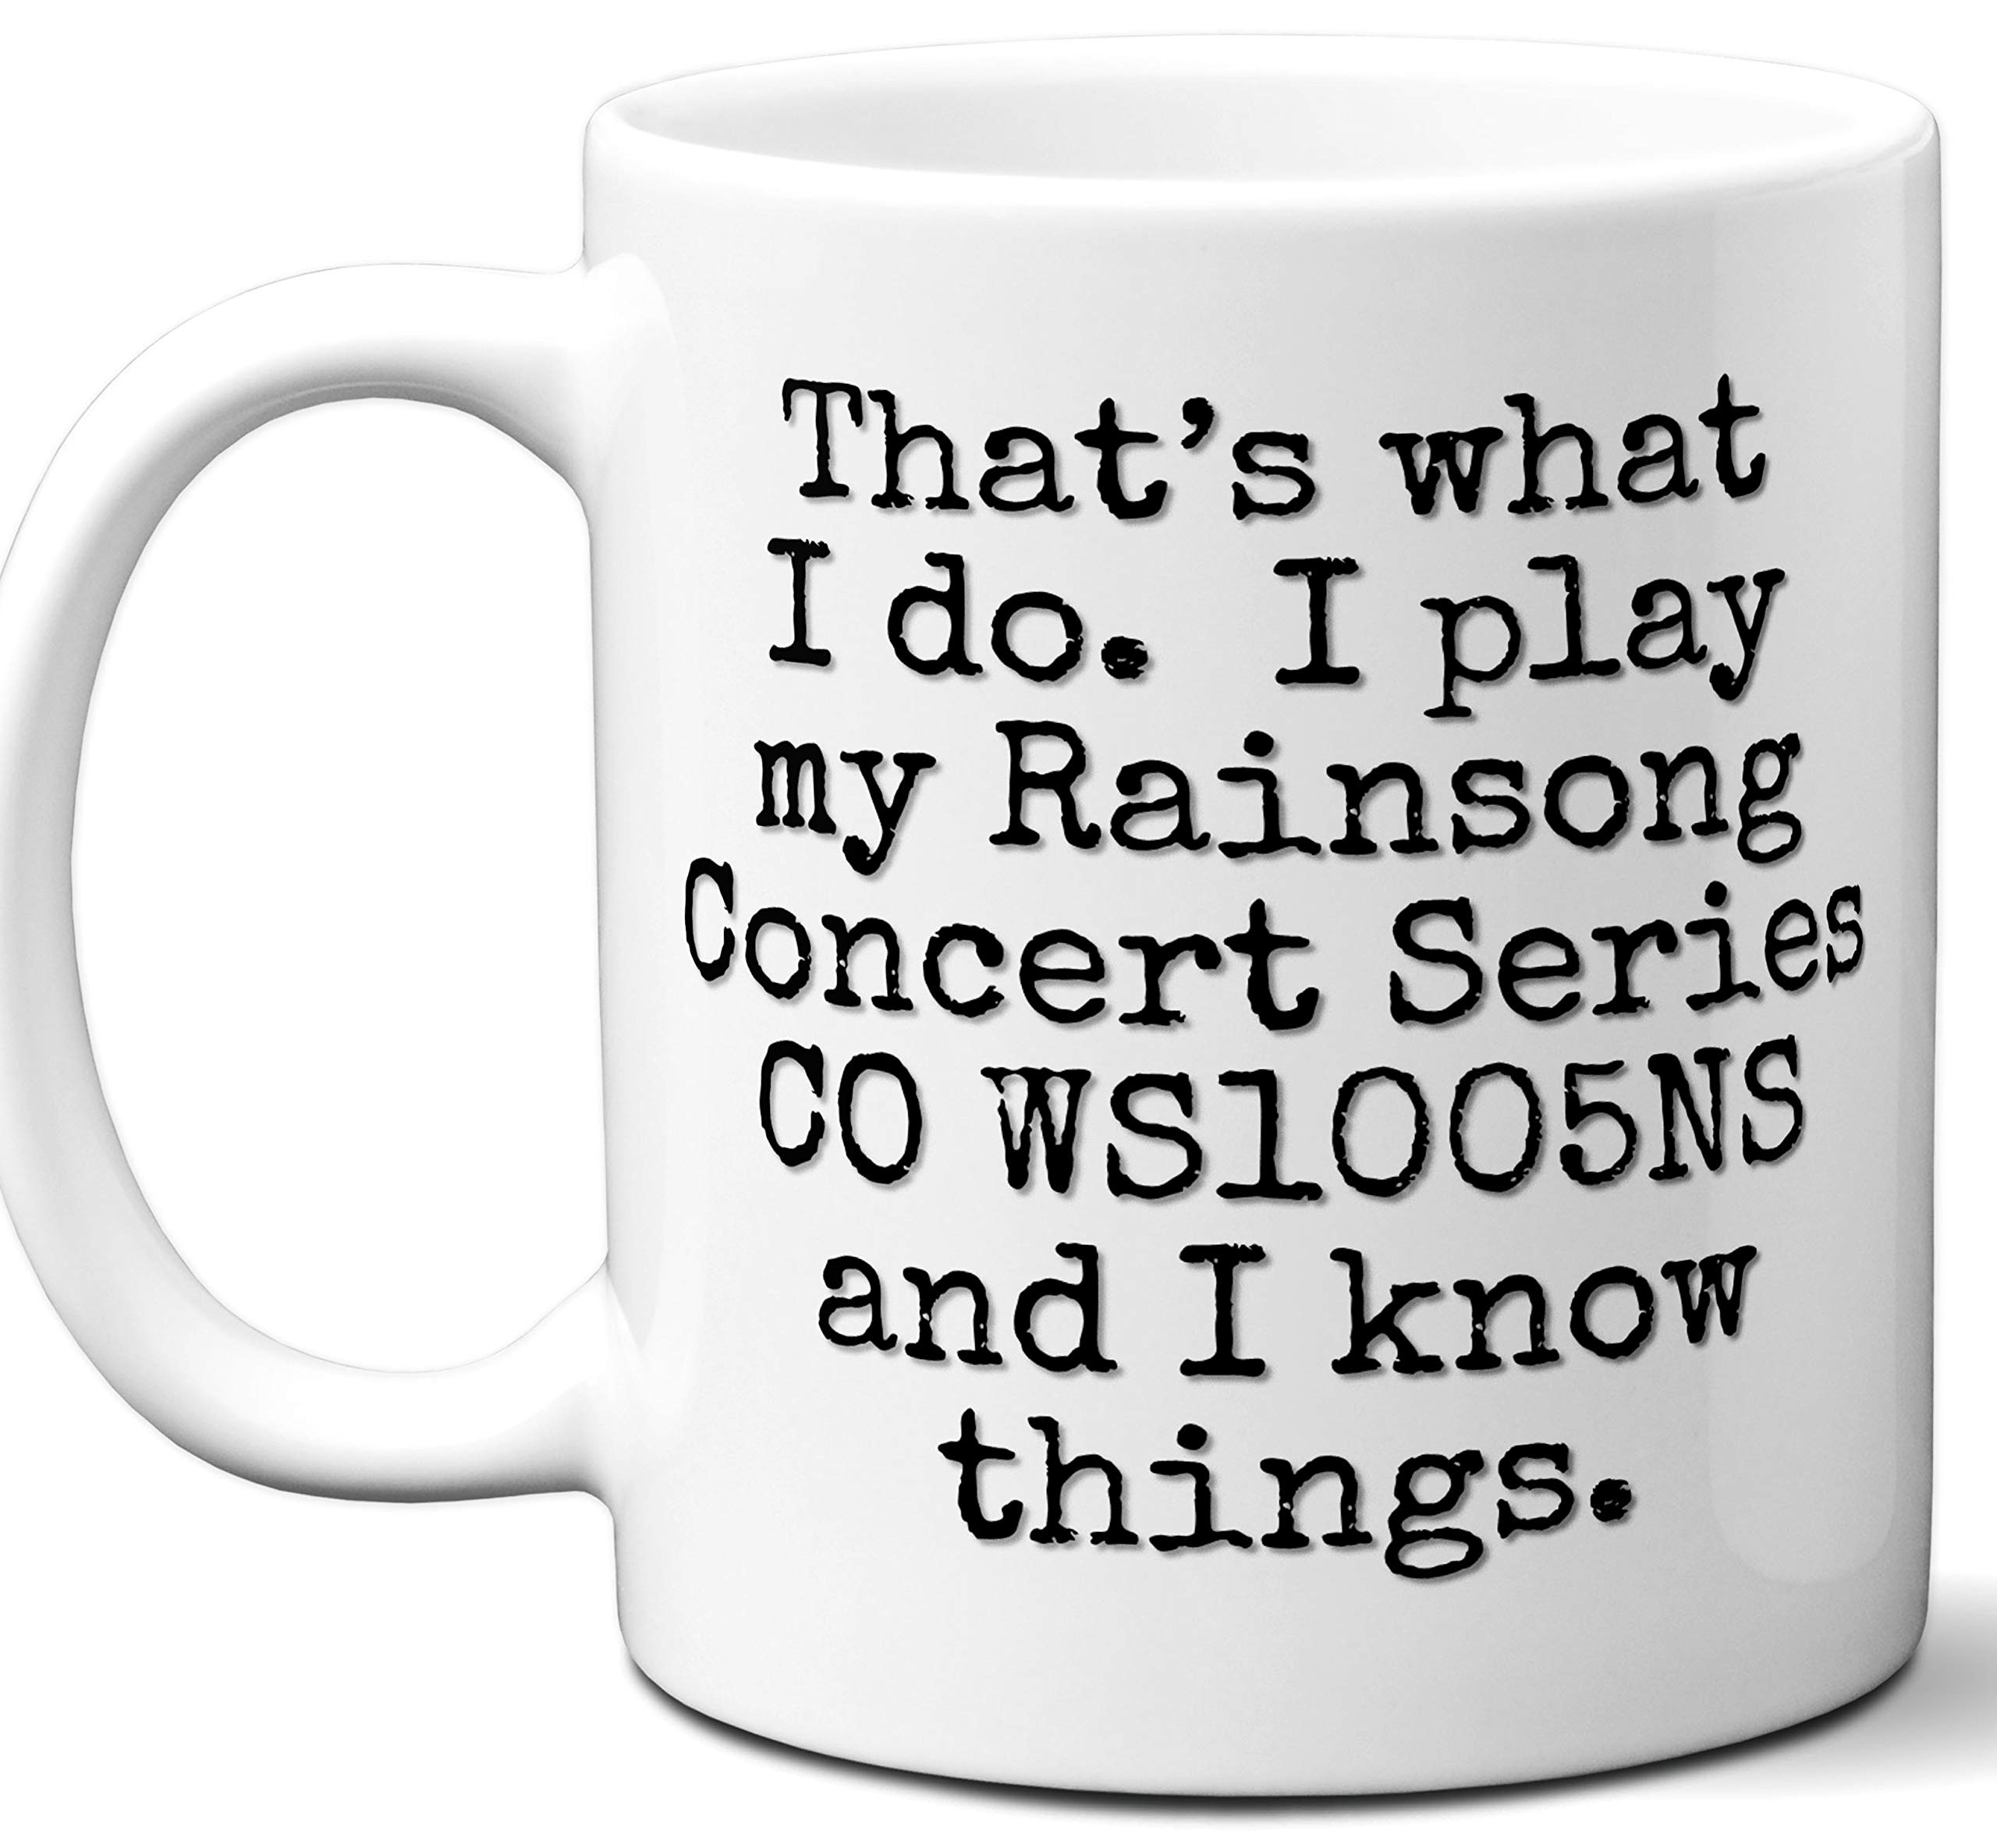 Guitar Gifts Mug. Rainsong Concert Series CO WS1005NS Guitar Players Lover Accessories Music Teacher Lover Him Her Funny Dad Men Women Card Pick Musician Acoustic Unique by Ombura